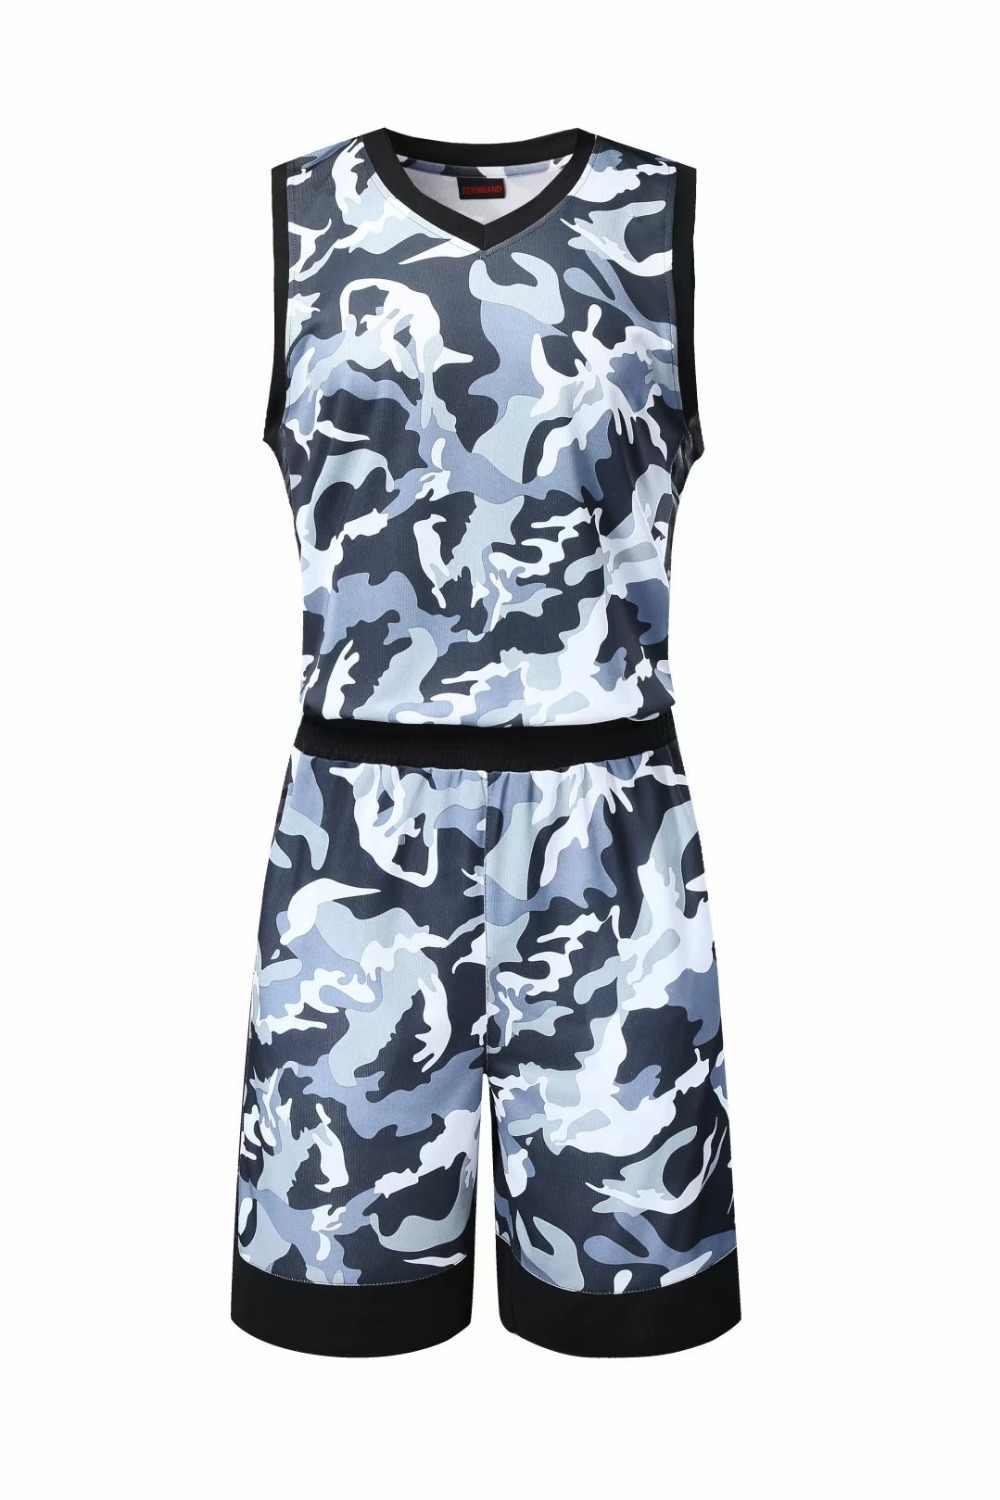 f6e601b02d4 ... Men s camouflage basketball jerseys and shorts adult blank basketball  sets sports basketball vests 2 pockets on ...